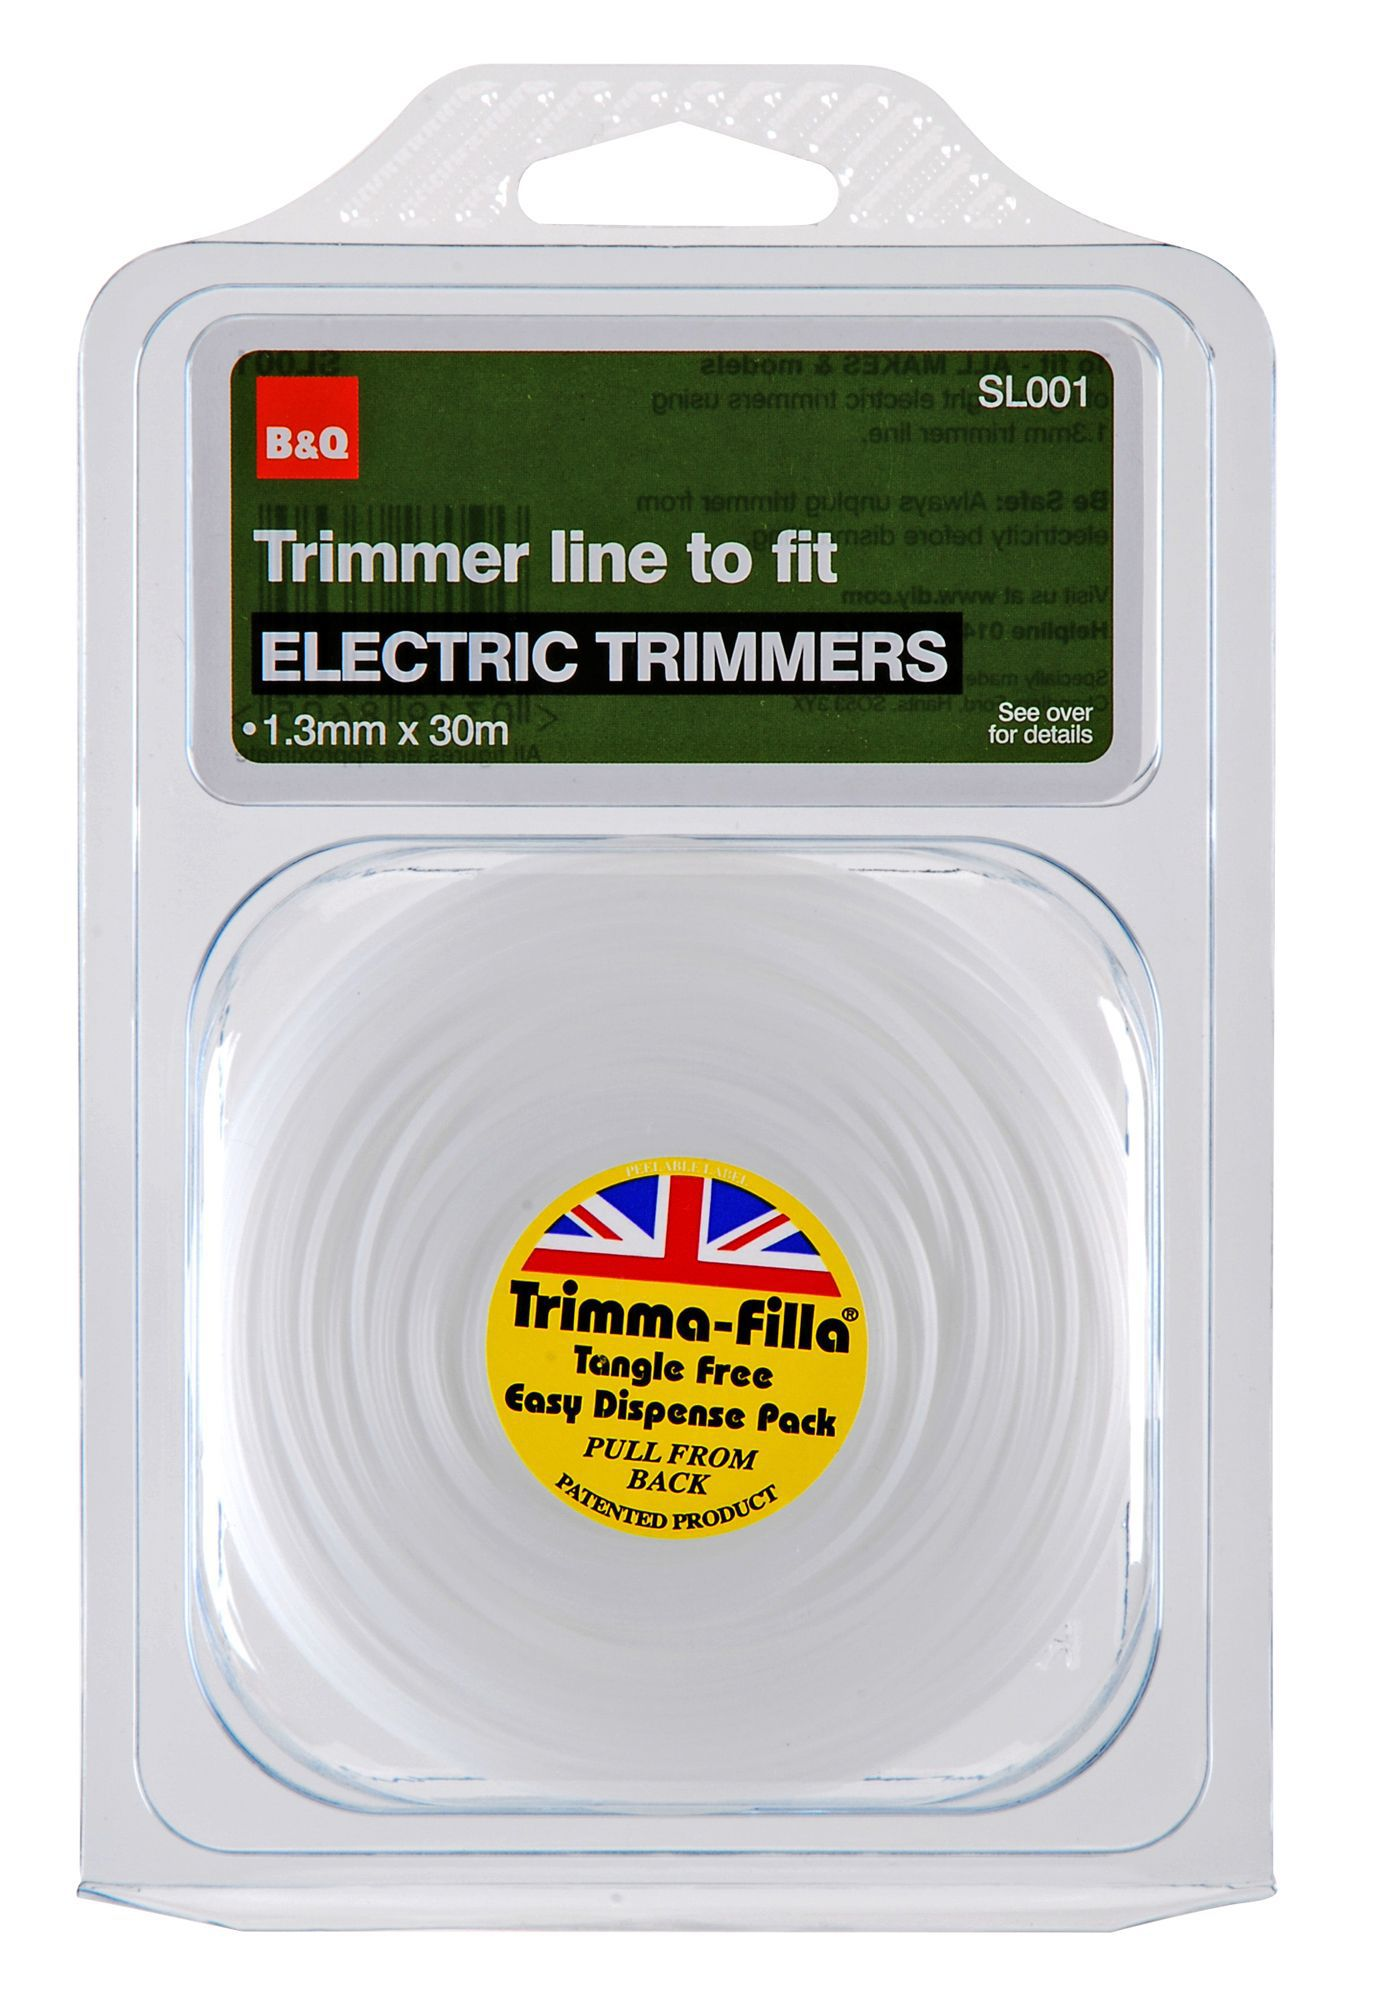 B&q Trimmer Line To Fit Electric Trimmers (t)1.3mm